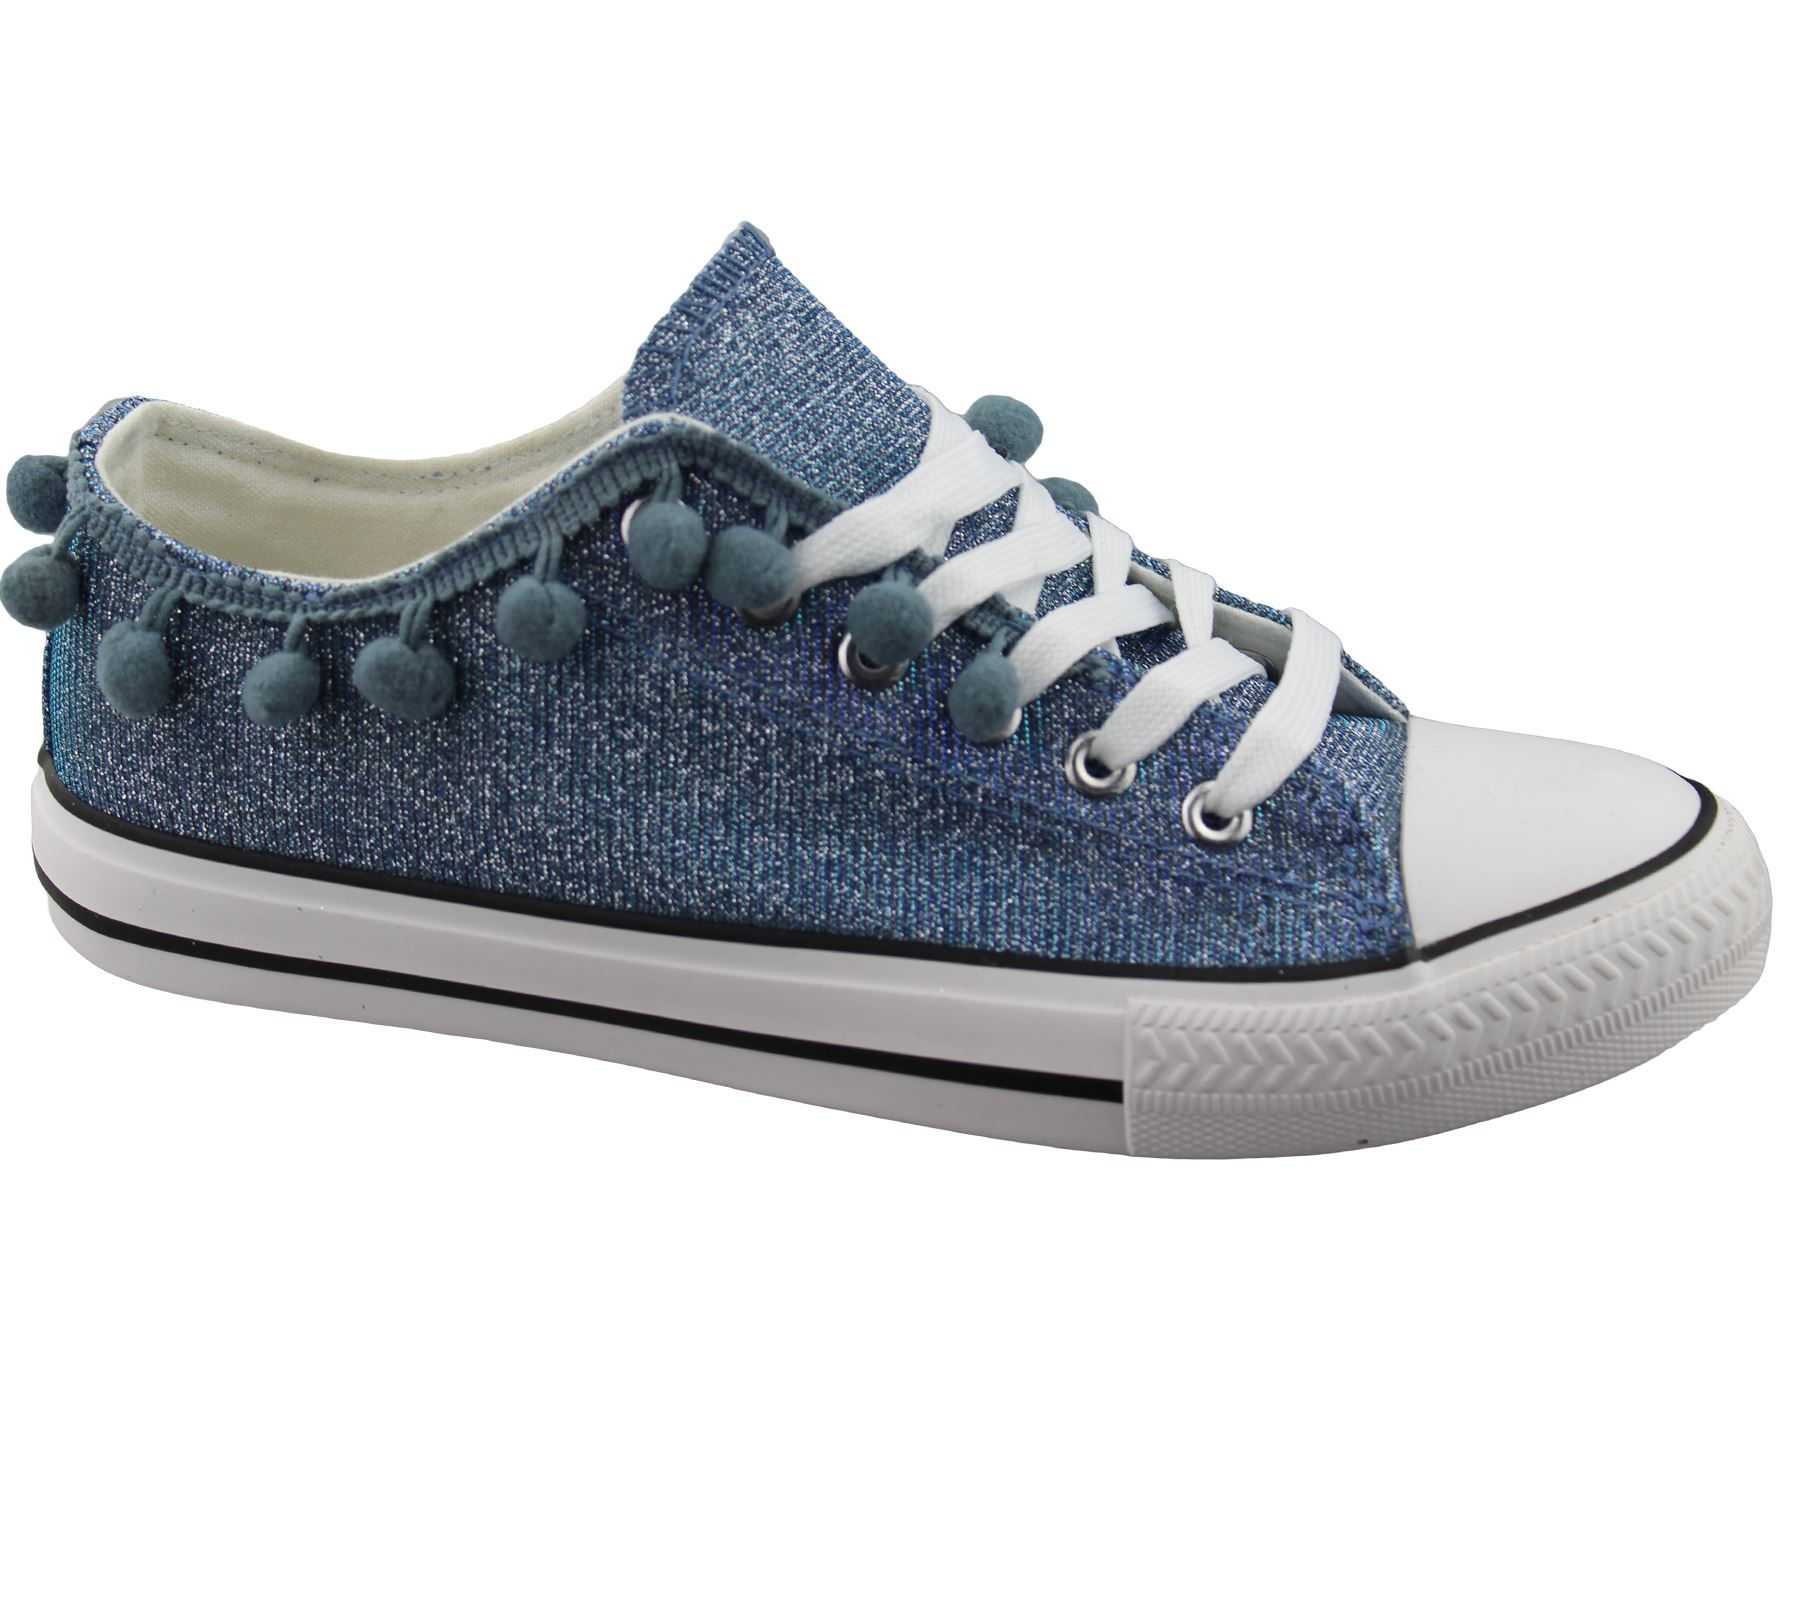 Womens-Sneakers-Flat-Pumps-Ladies-Glittered-Summer-Plimsole-Canvas-Shoes thumbnail 24